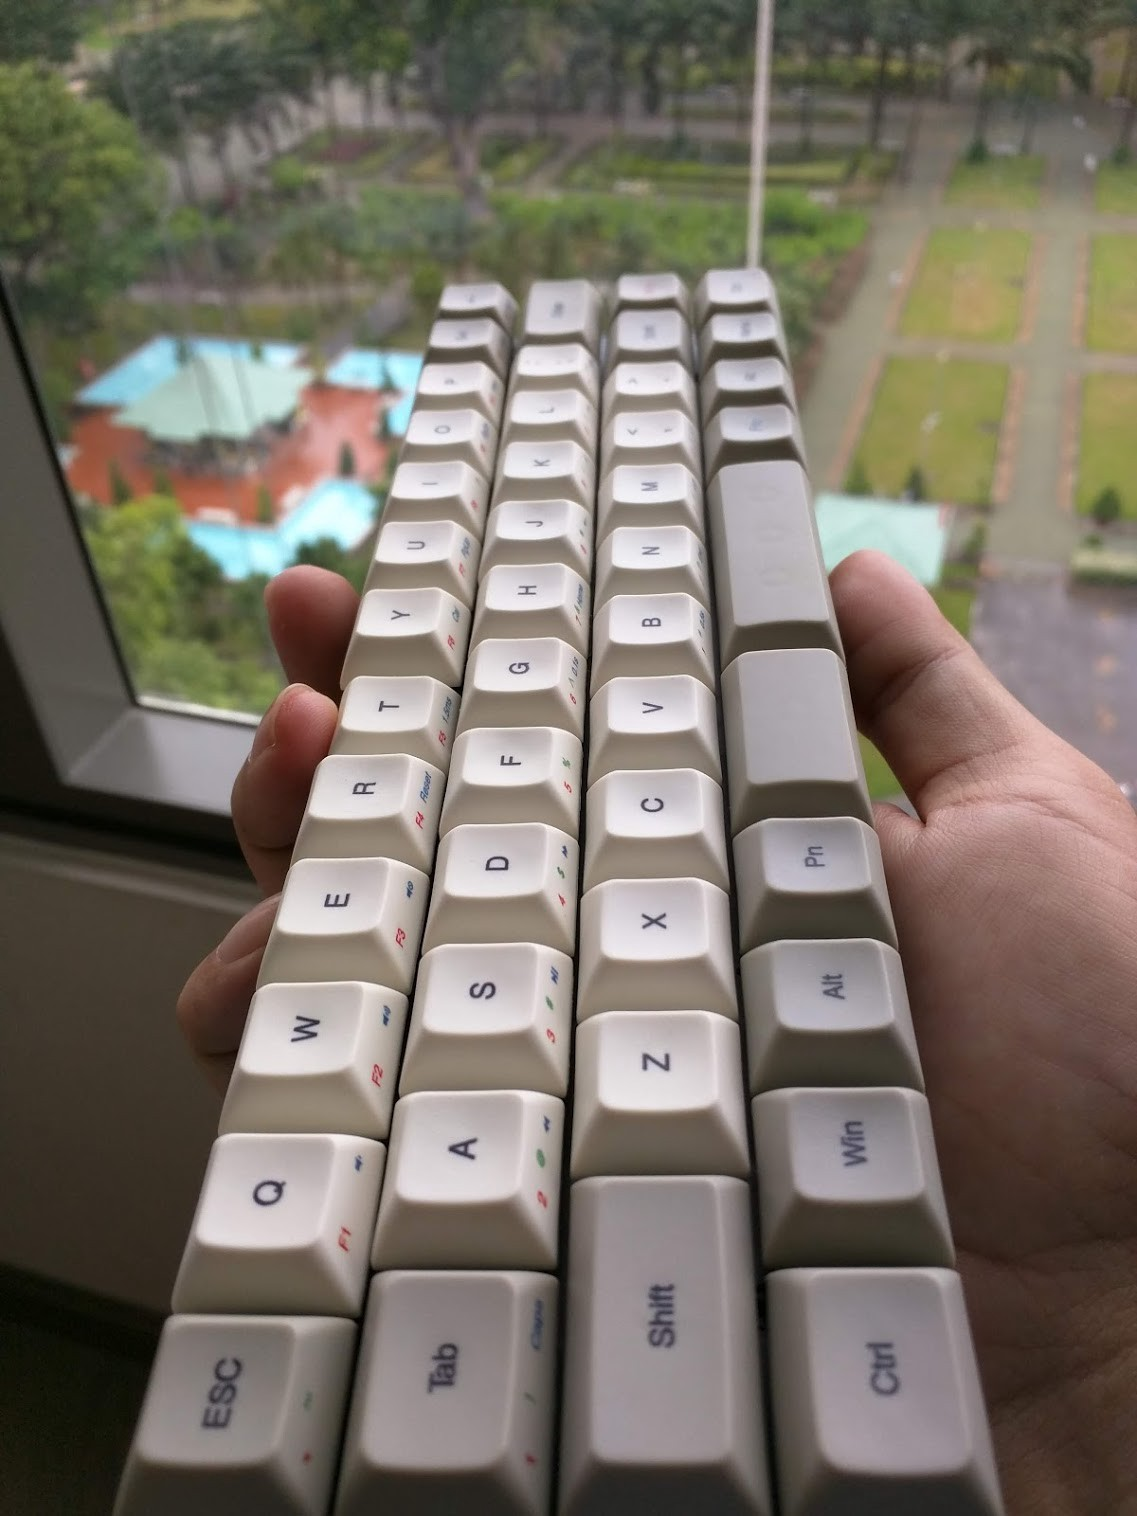 Yet another Vortex Core review - Lam Do Thanh - Medium